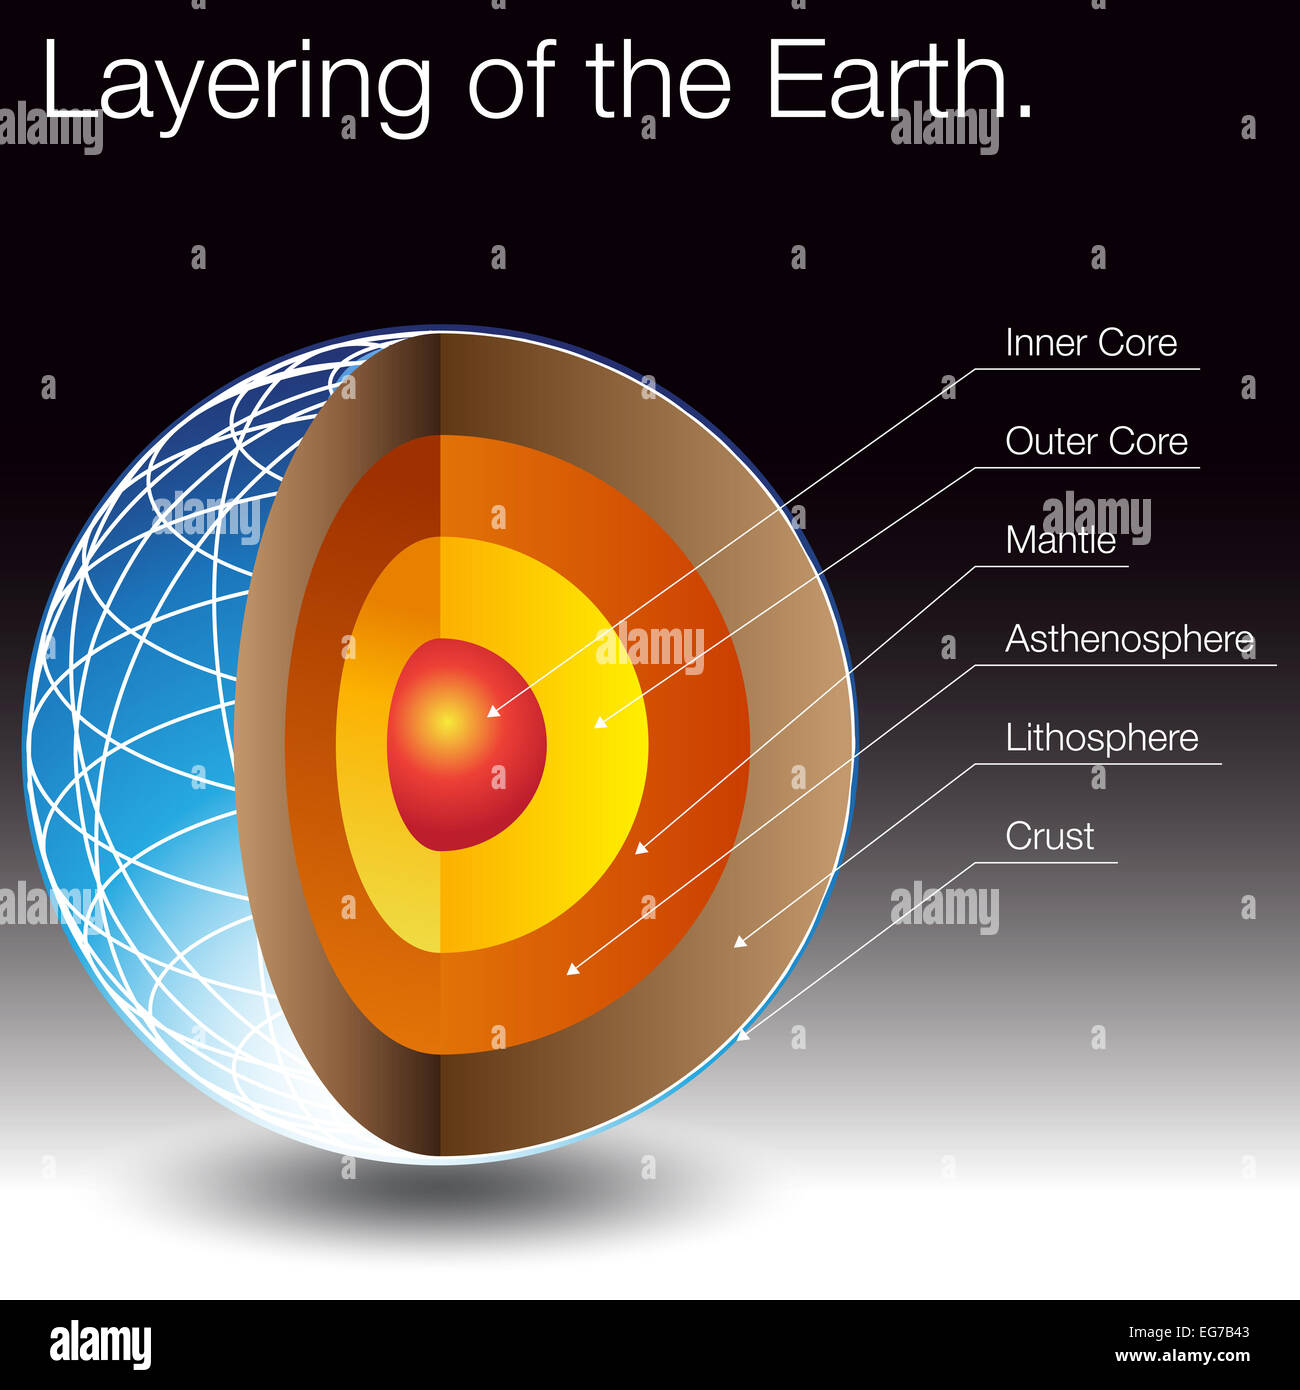 hight resolution of an image of the layers of the earth stock image